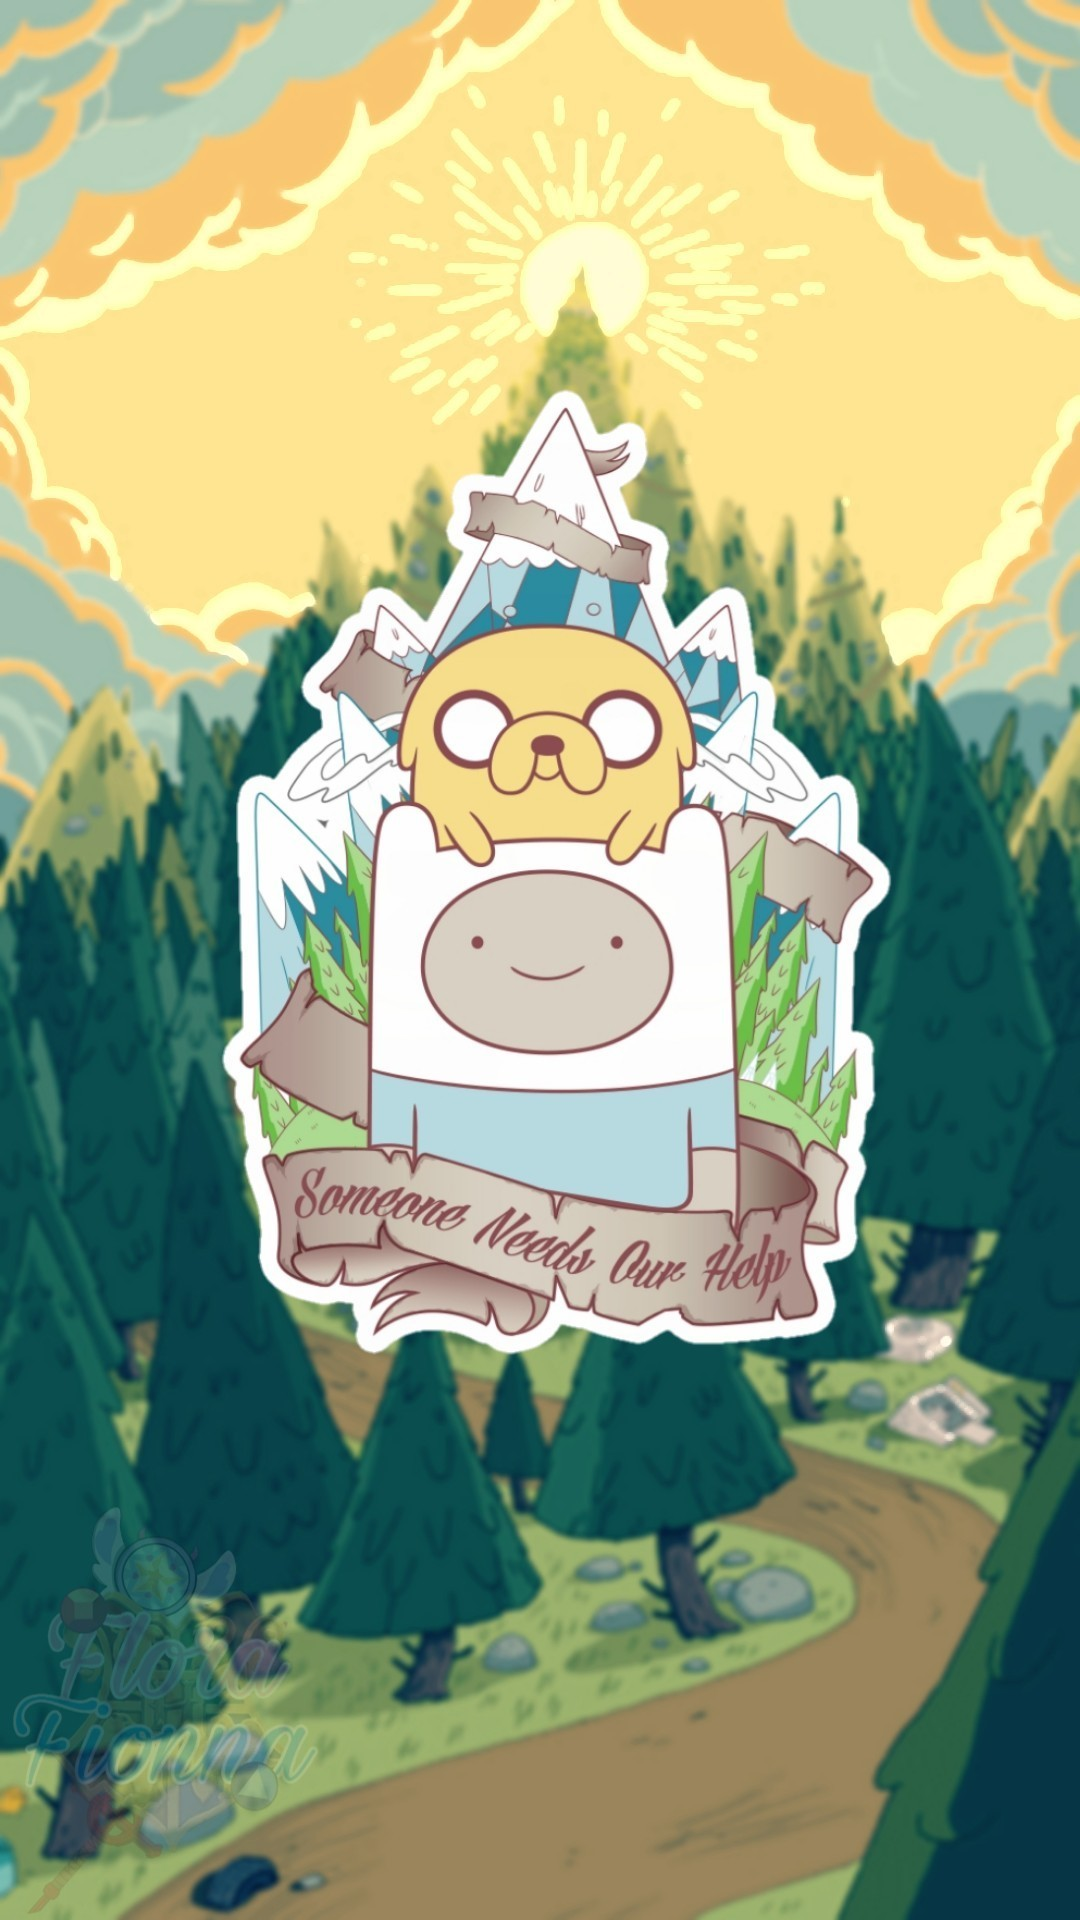 Aesthetic Adventure Time Wallpaper Mobile, Top Wallpaper - Adventure Time Wallpaper Phone , HD Wallpaper & Backgrounds